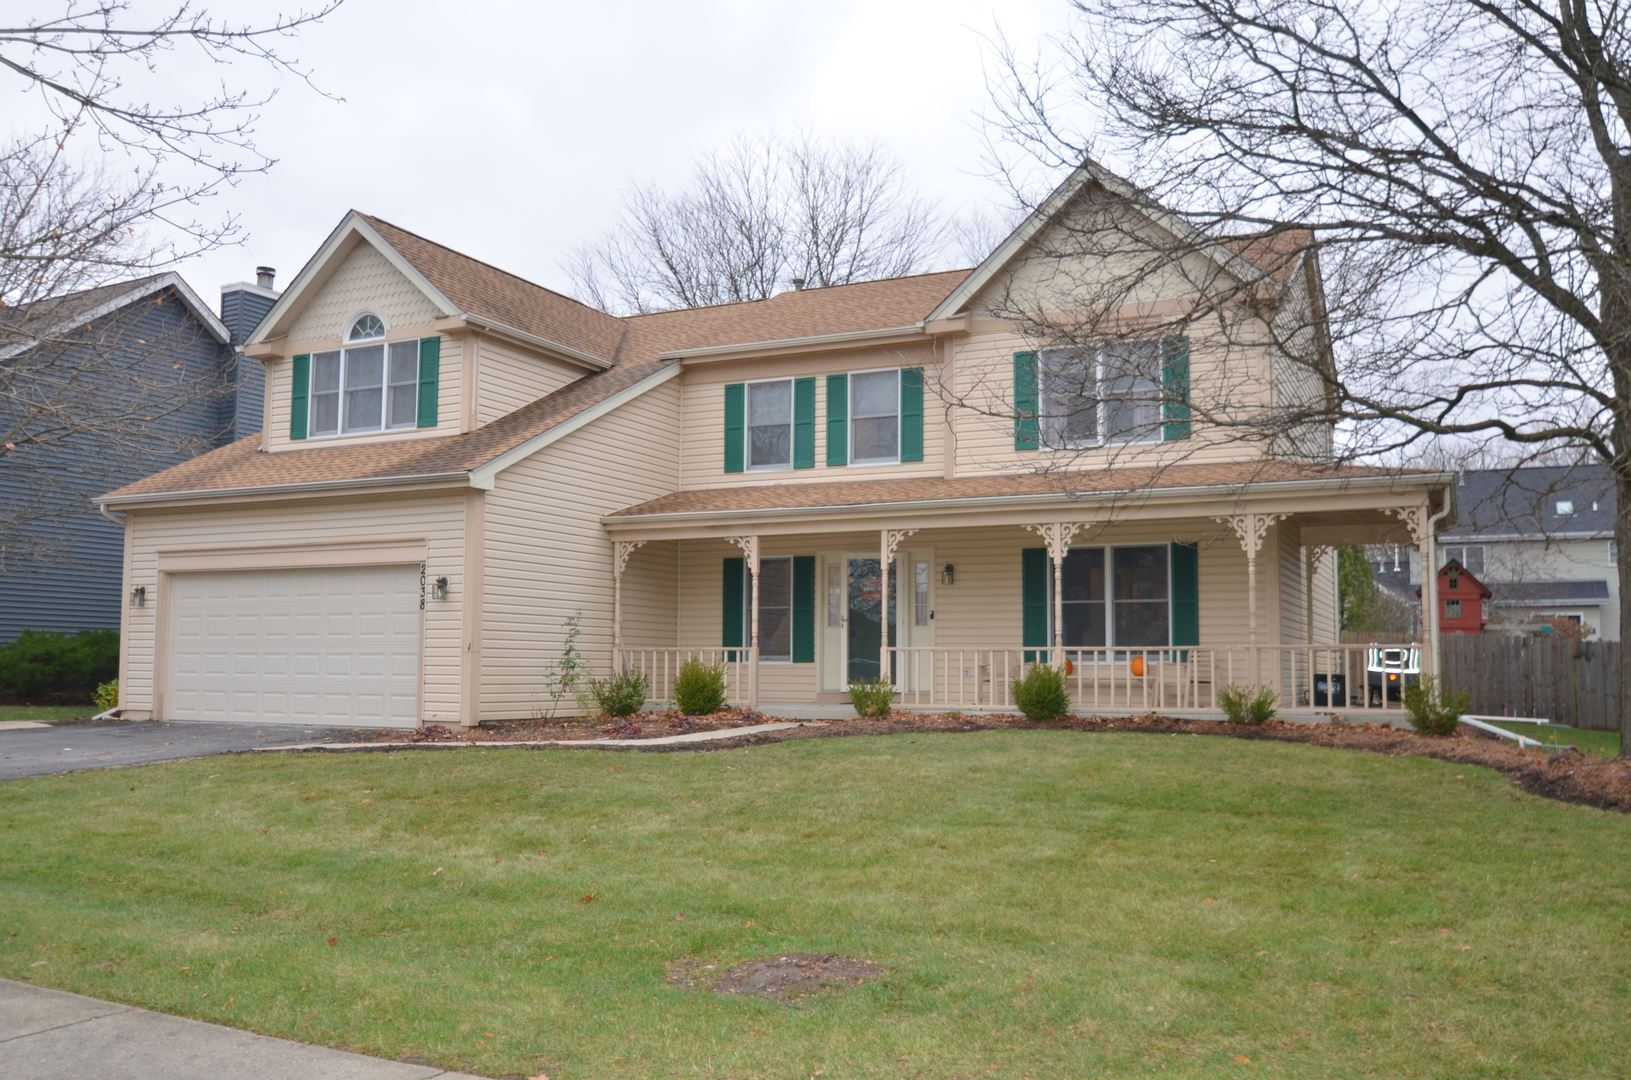 2038 Spaulding Avenue, West Dundee, IL 60118 - #: 10934209